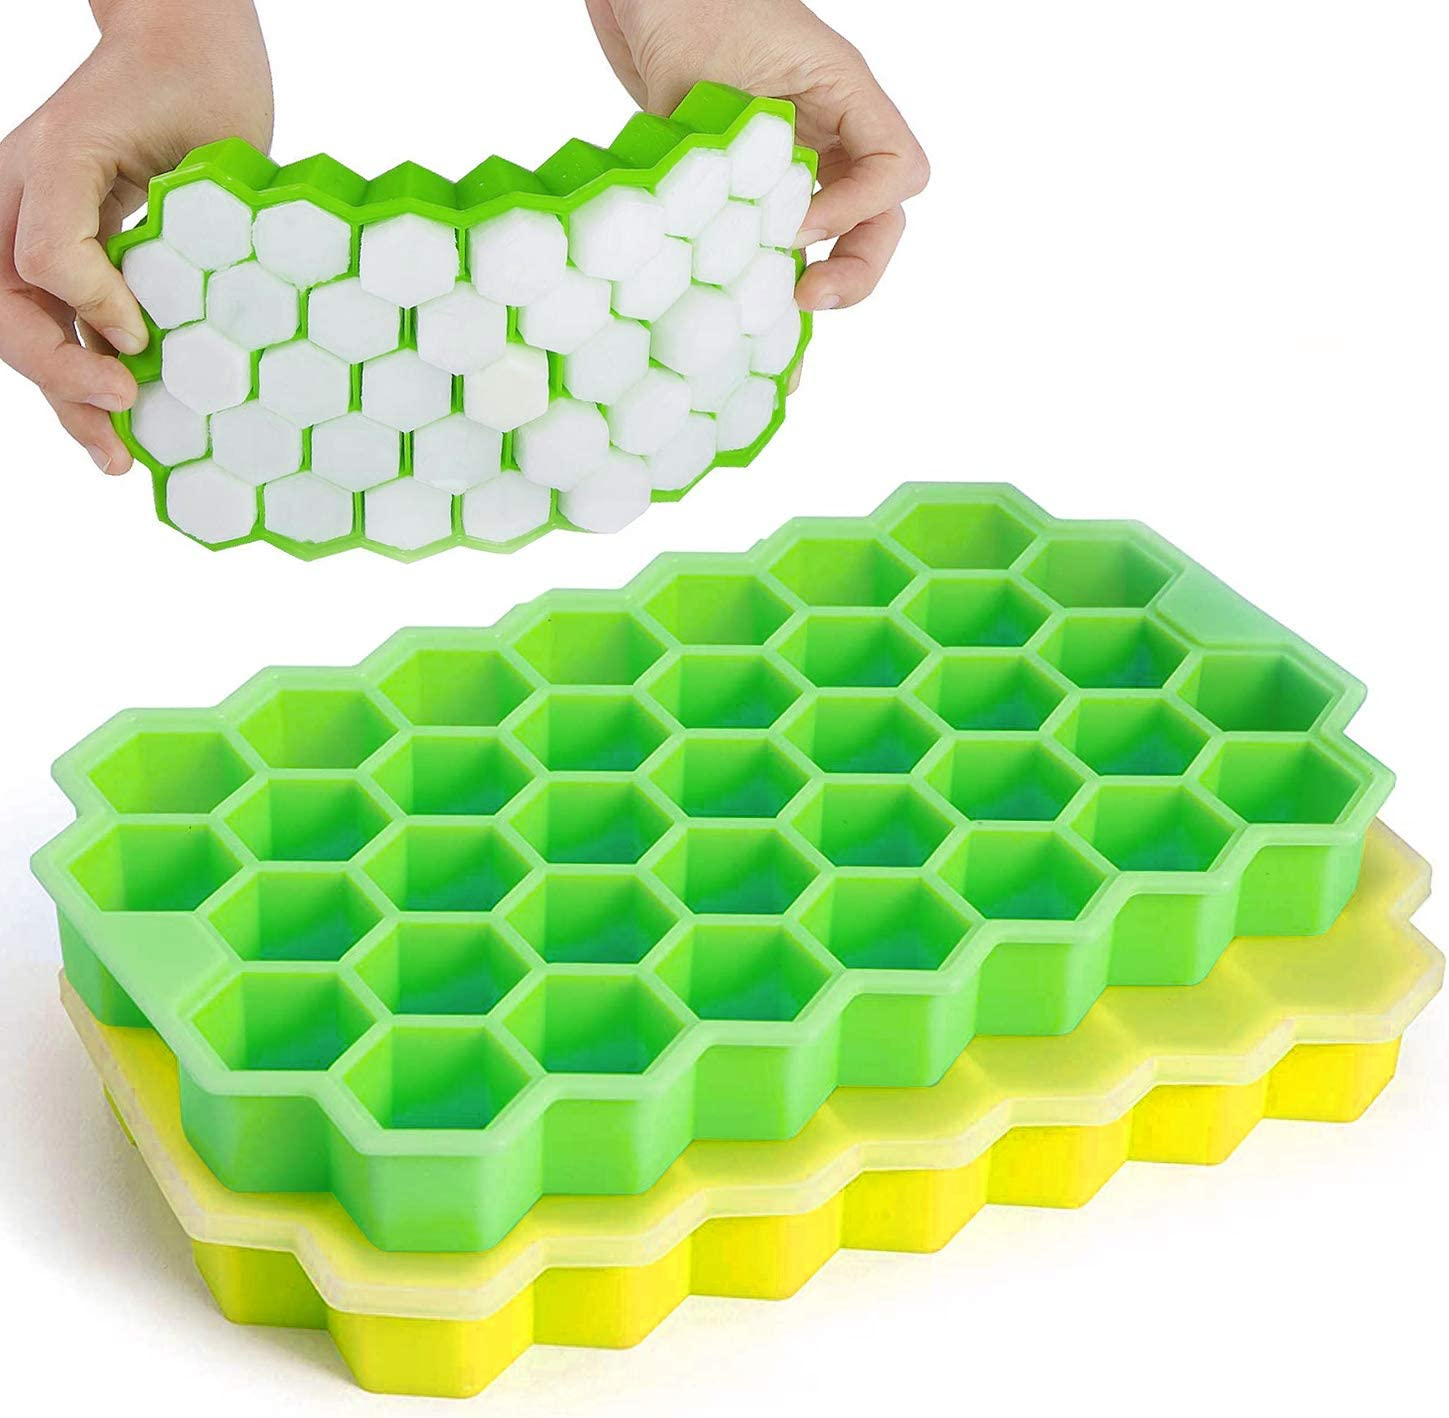 Ice Cube Trays, 2 Pack Silicone Ice Trays with Covers, BPA Free Flexible Ice Trays with Removable Lid, Honeycomb Shaped Ice Molds Creates 74 Ice Cubes for Chilled Drinks